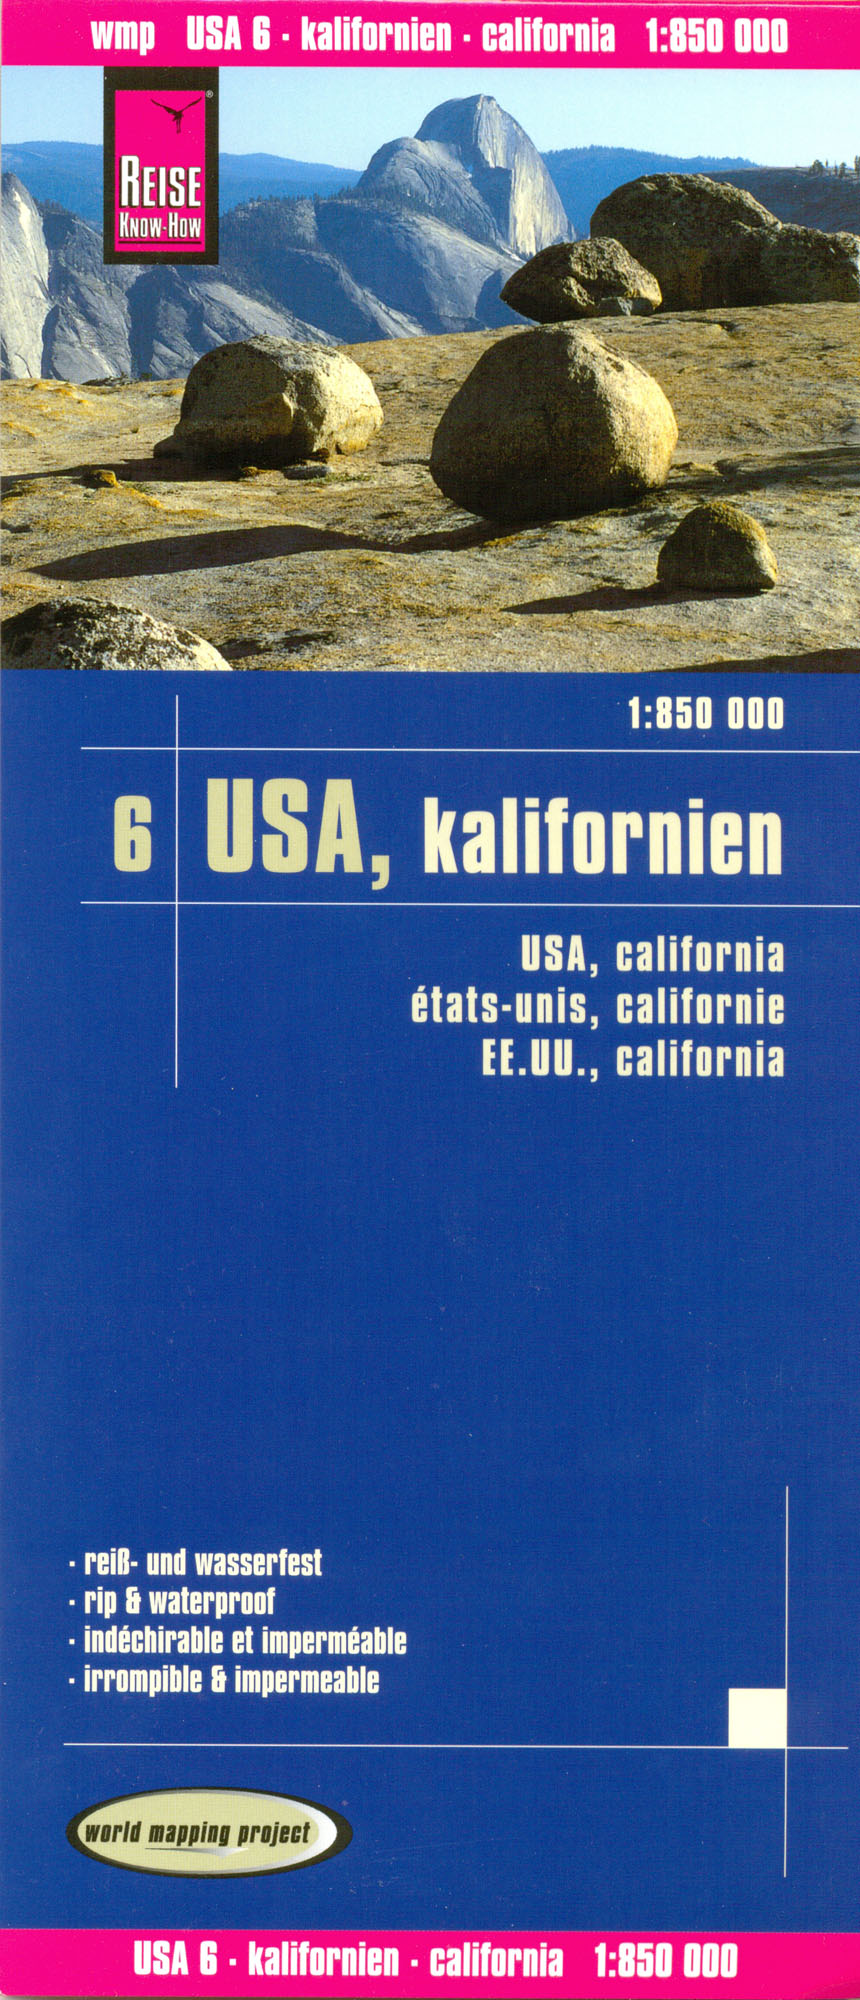 USA #6 Kalifornie (California) 1:850t mapa RKH